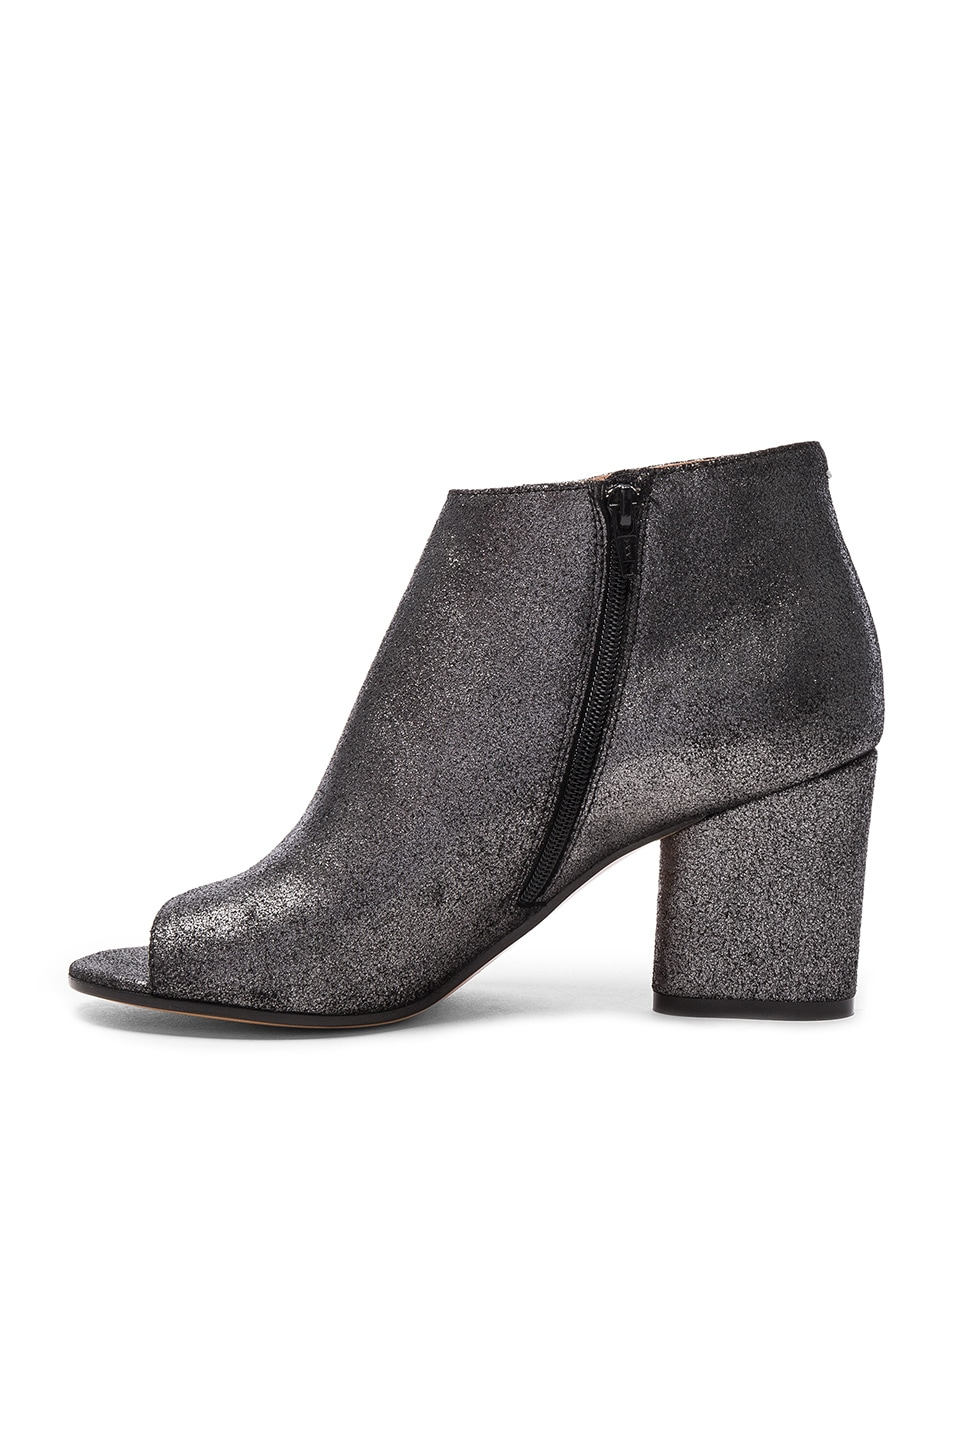 Image 5 of Maison Margiela Open Toe Booties in Black Metallic